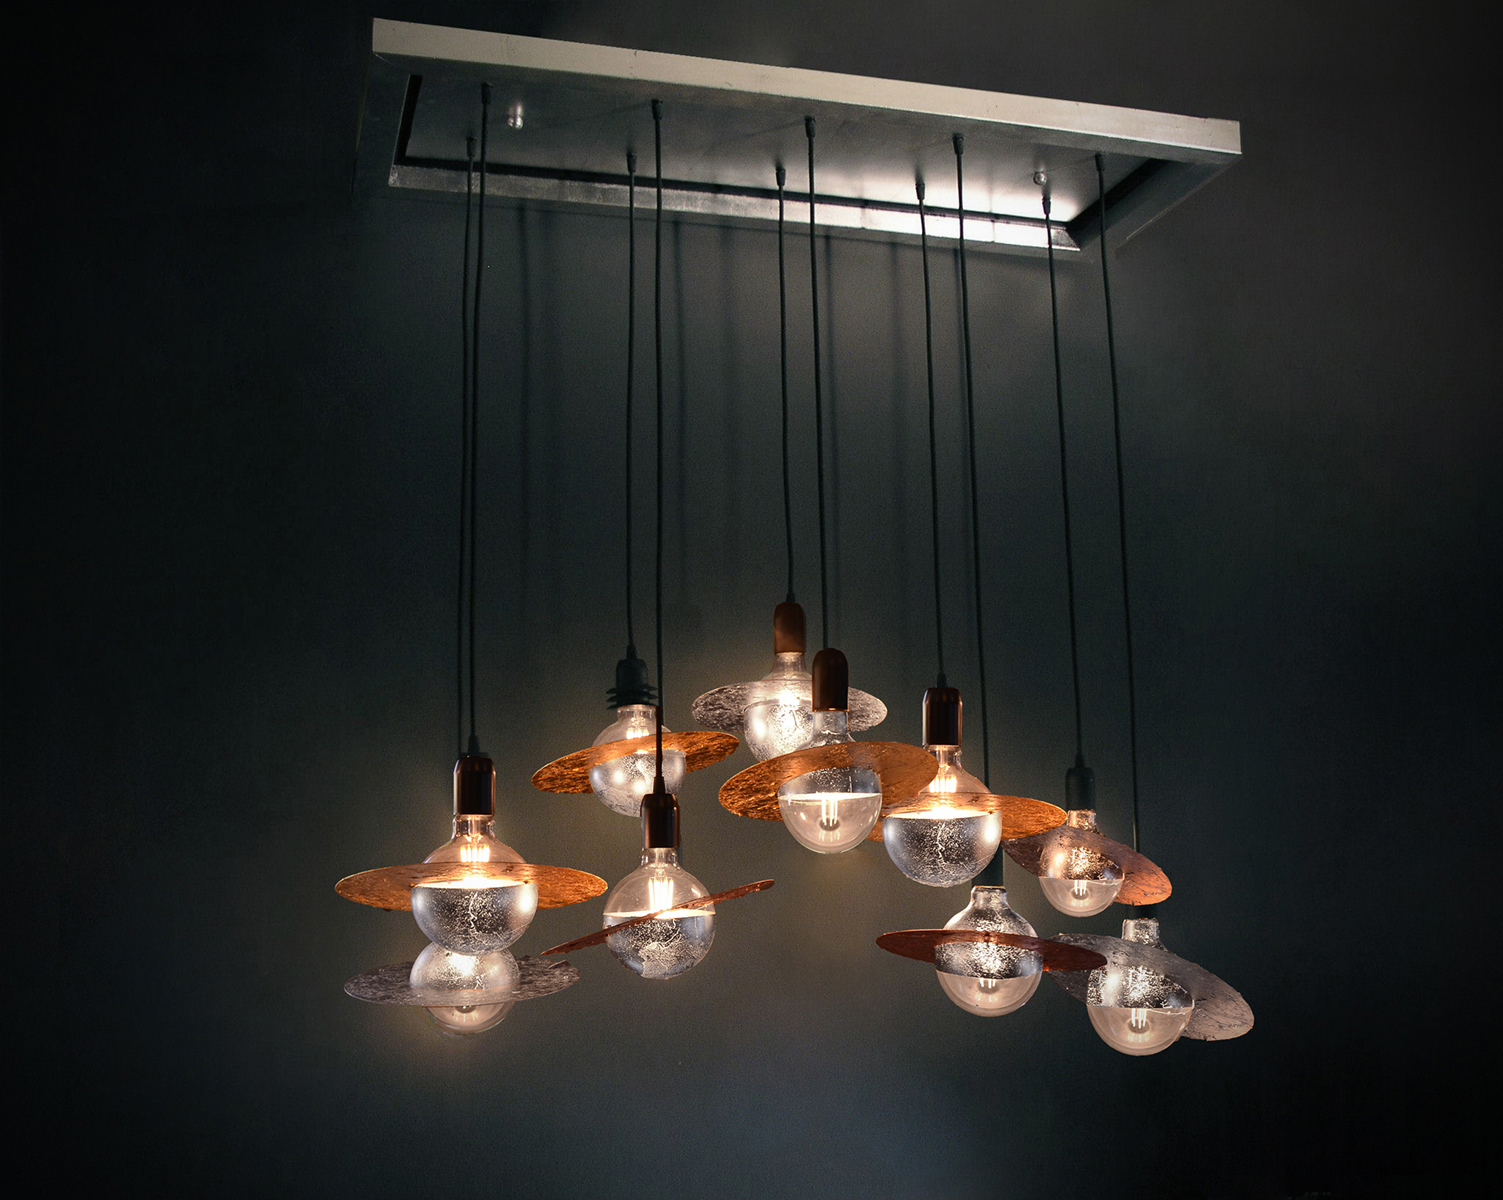 Galaxy 10 - Ceiling Light fixture